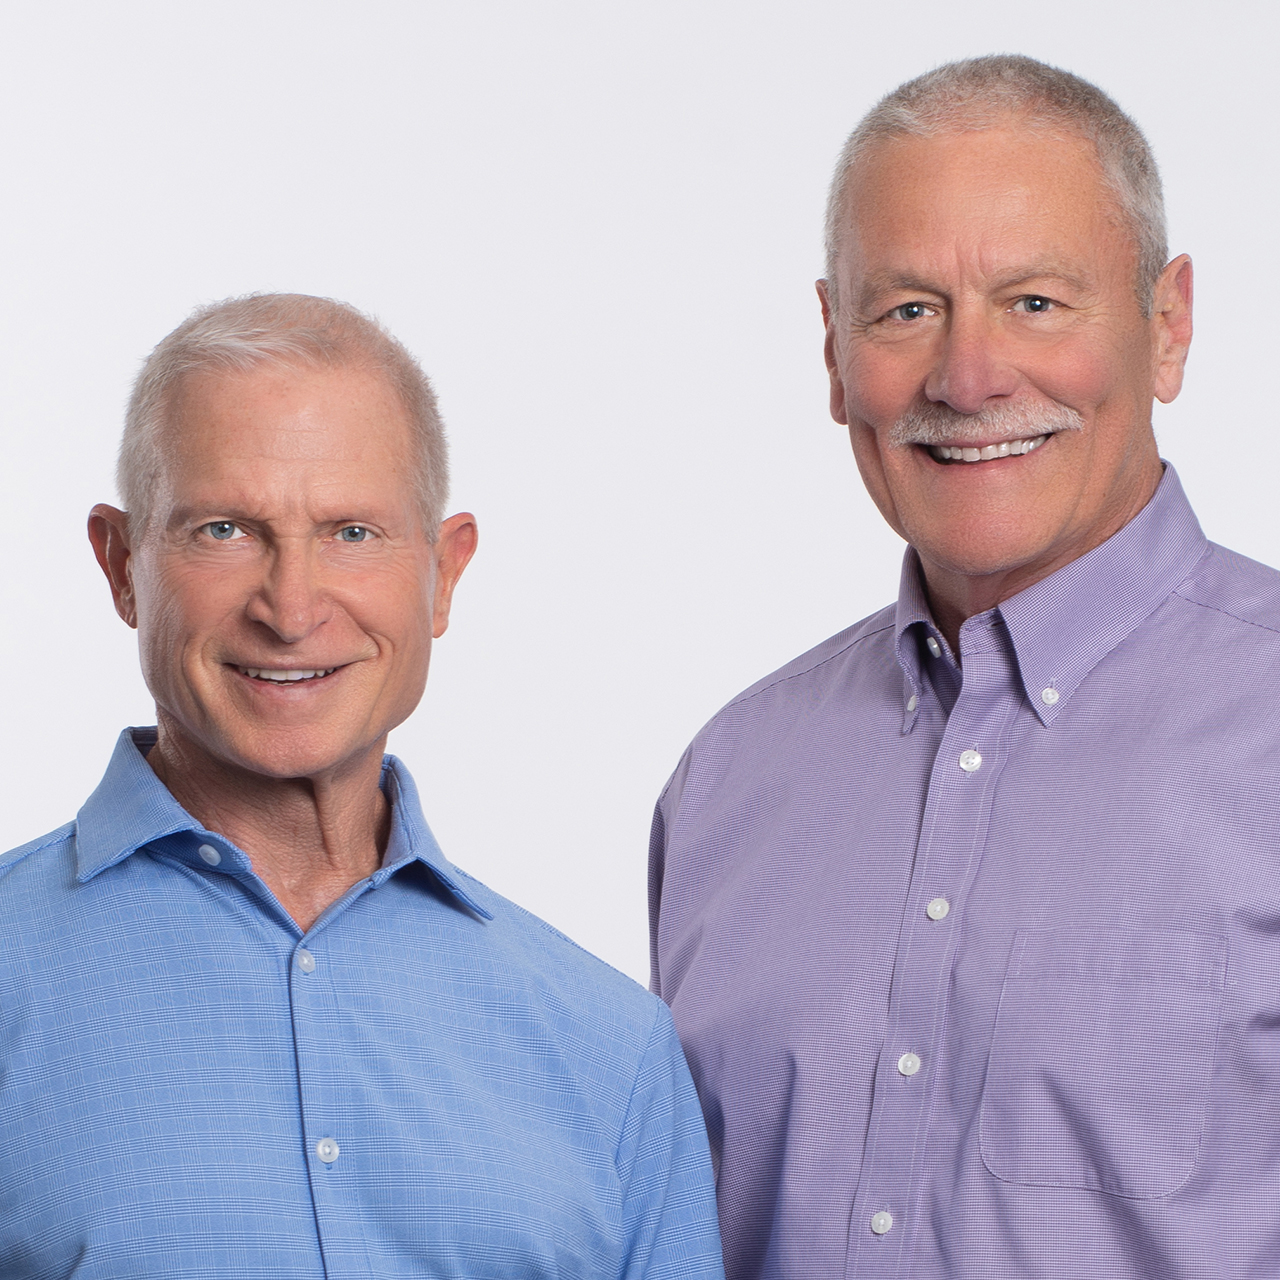 The Keith Kropp & Wayne Rogers Team